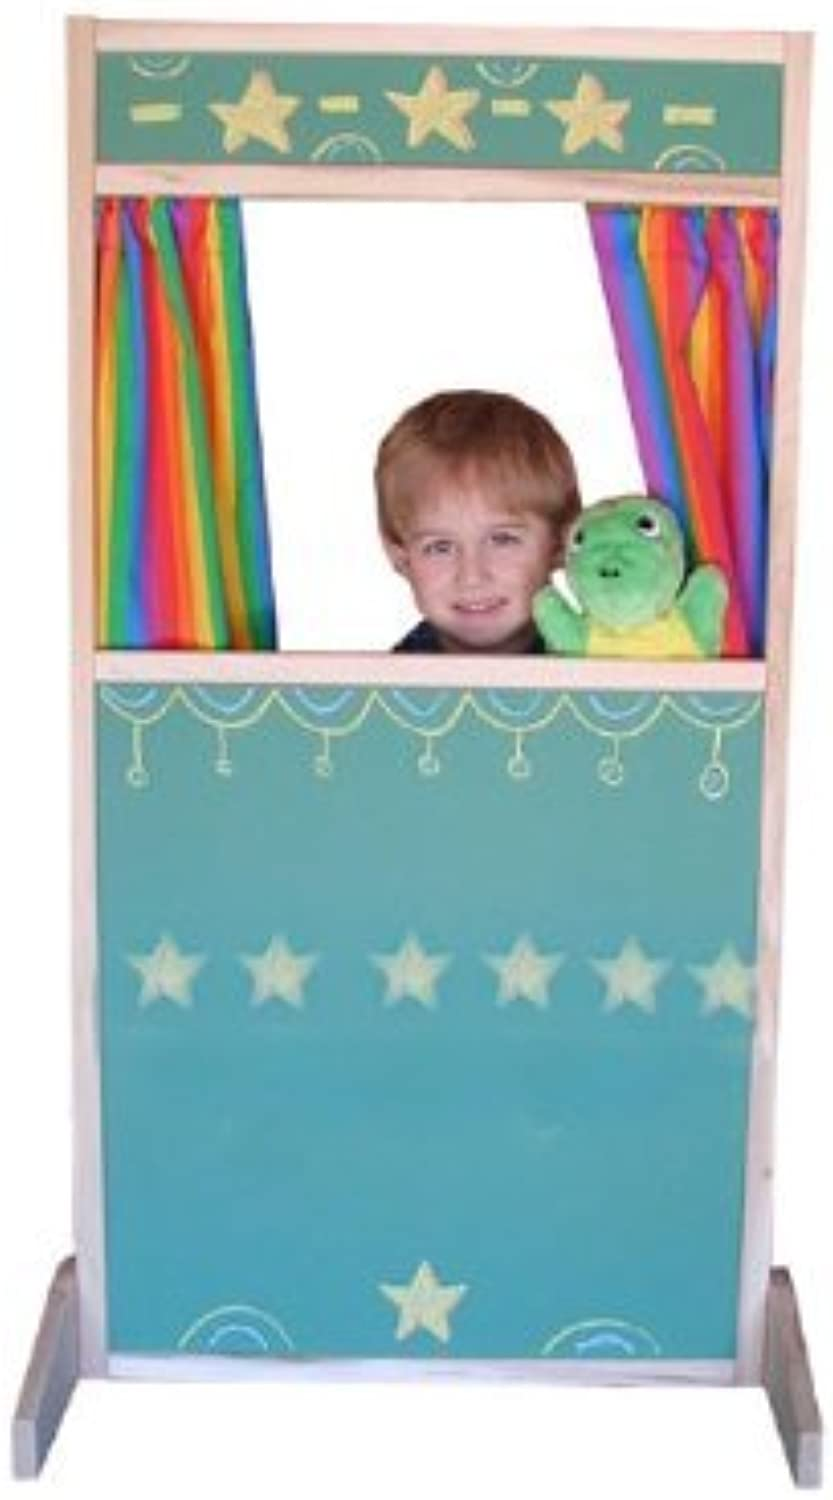 Beka 05002 Storefront Puppet Theater markerboard surface by Beka